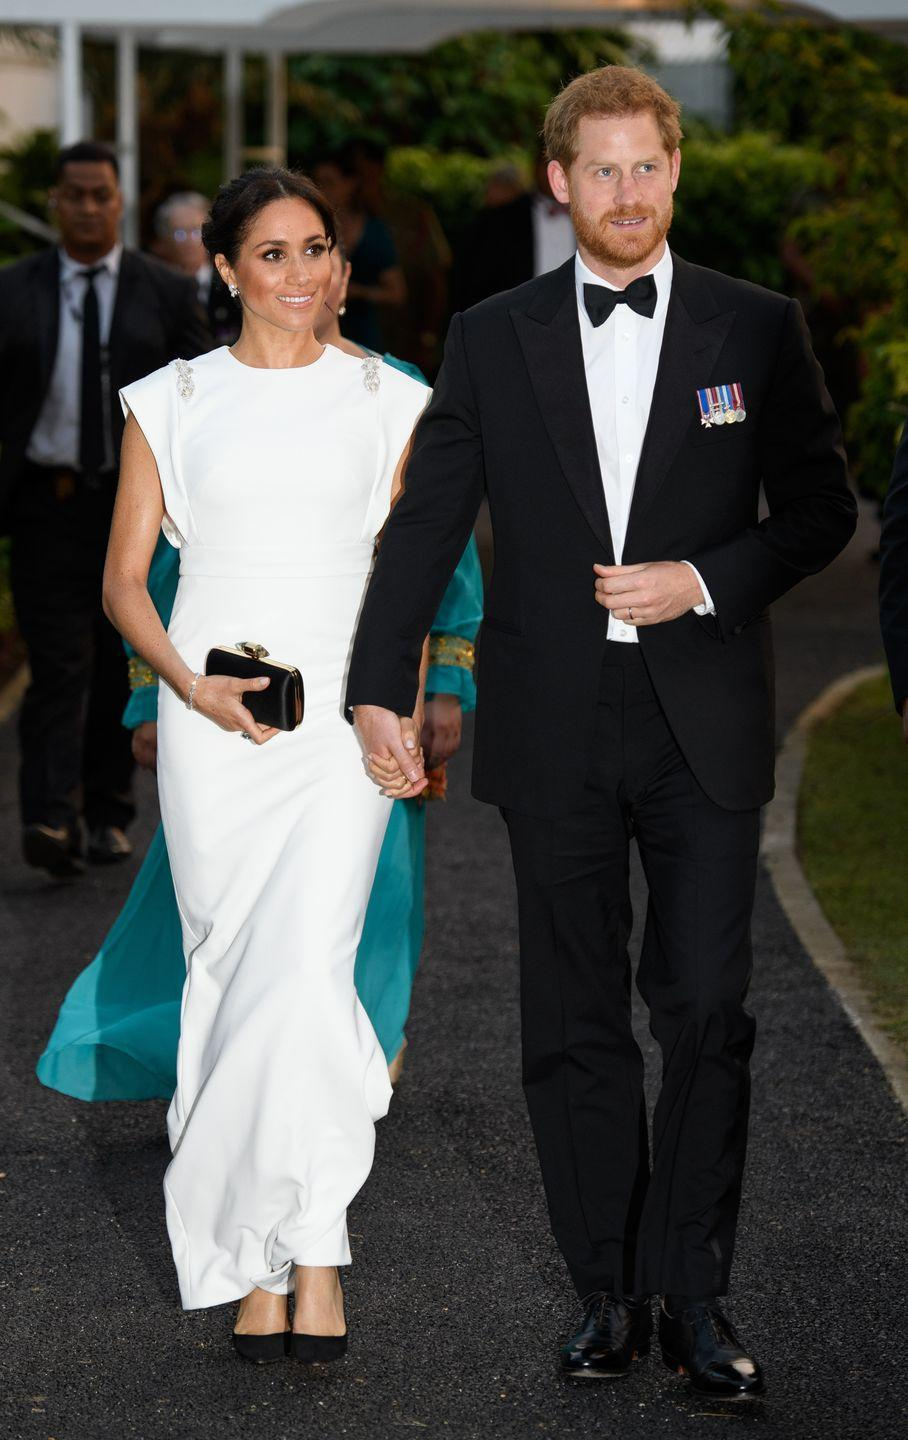 <p>The couple looked a million dollars as they walked hand-in-hand to the Consular House in NukuÕalofa, Tonga for an official dinner during their royal tour. </p>